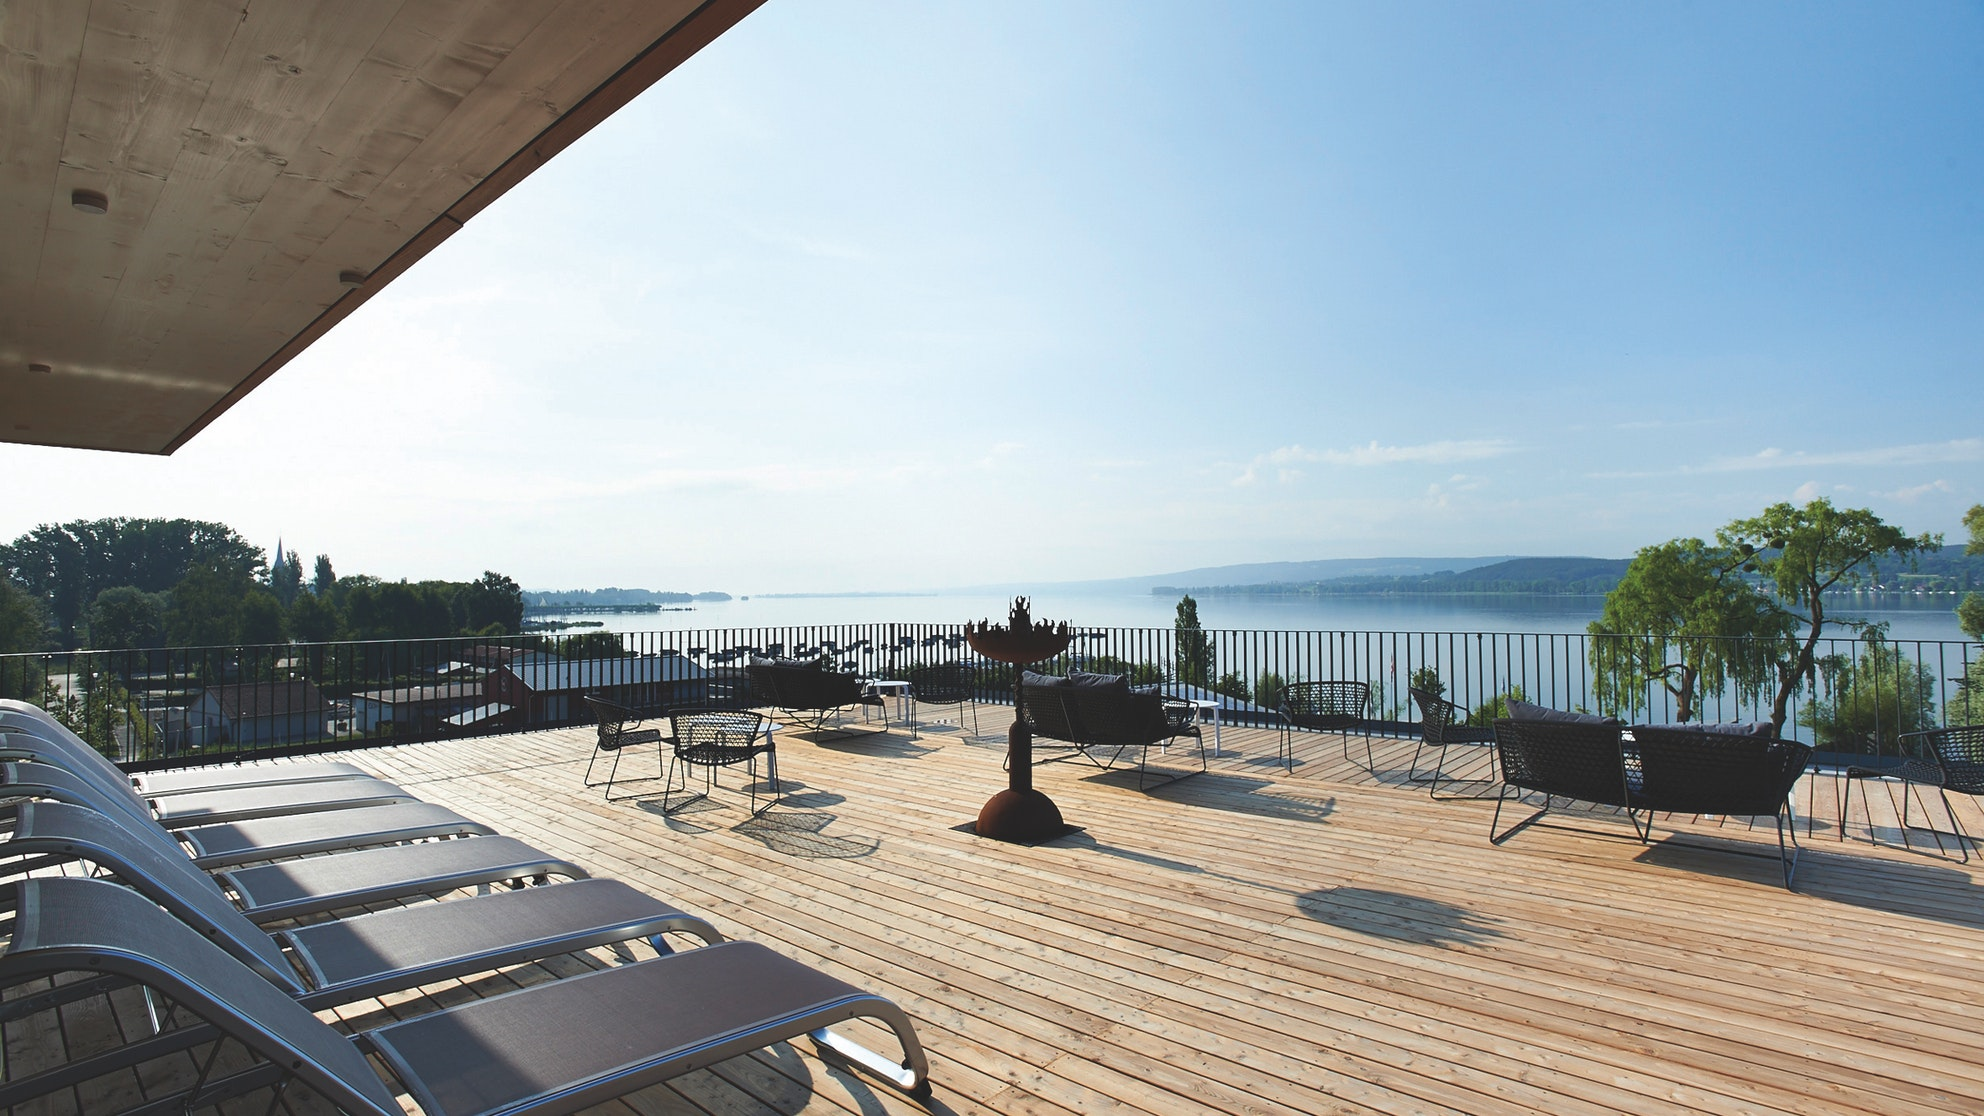 Designhotel am bodensee weekend4two for Design hotel sauerland am kurhaus 6 8